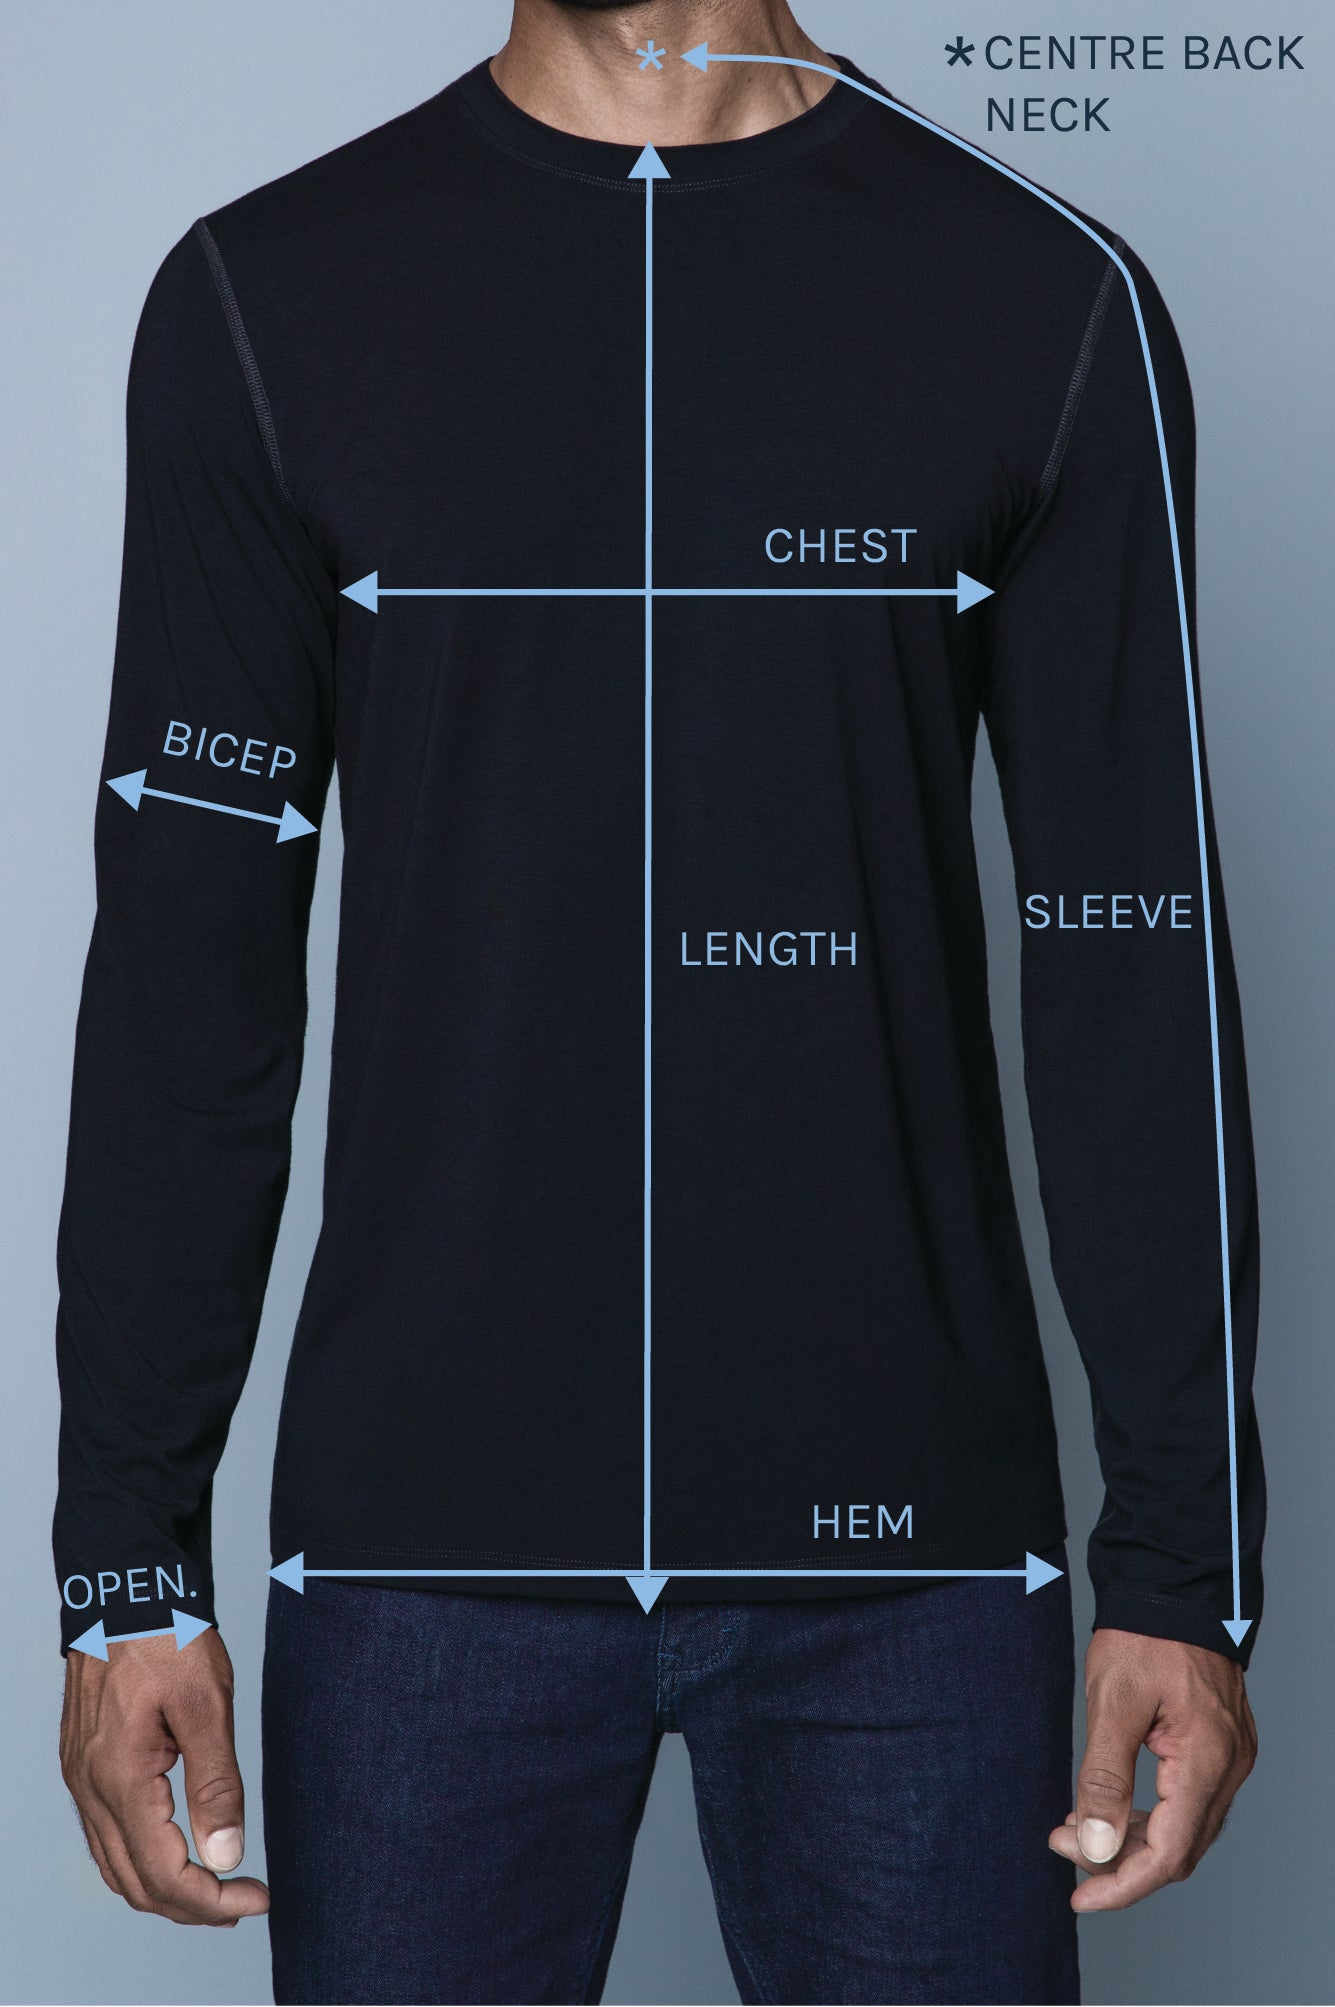 tall men clothing measurement chart. Shirts, hoodies and shorts for tall men. Navas Lab size chart